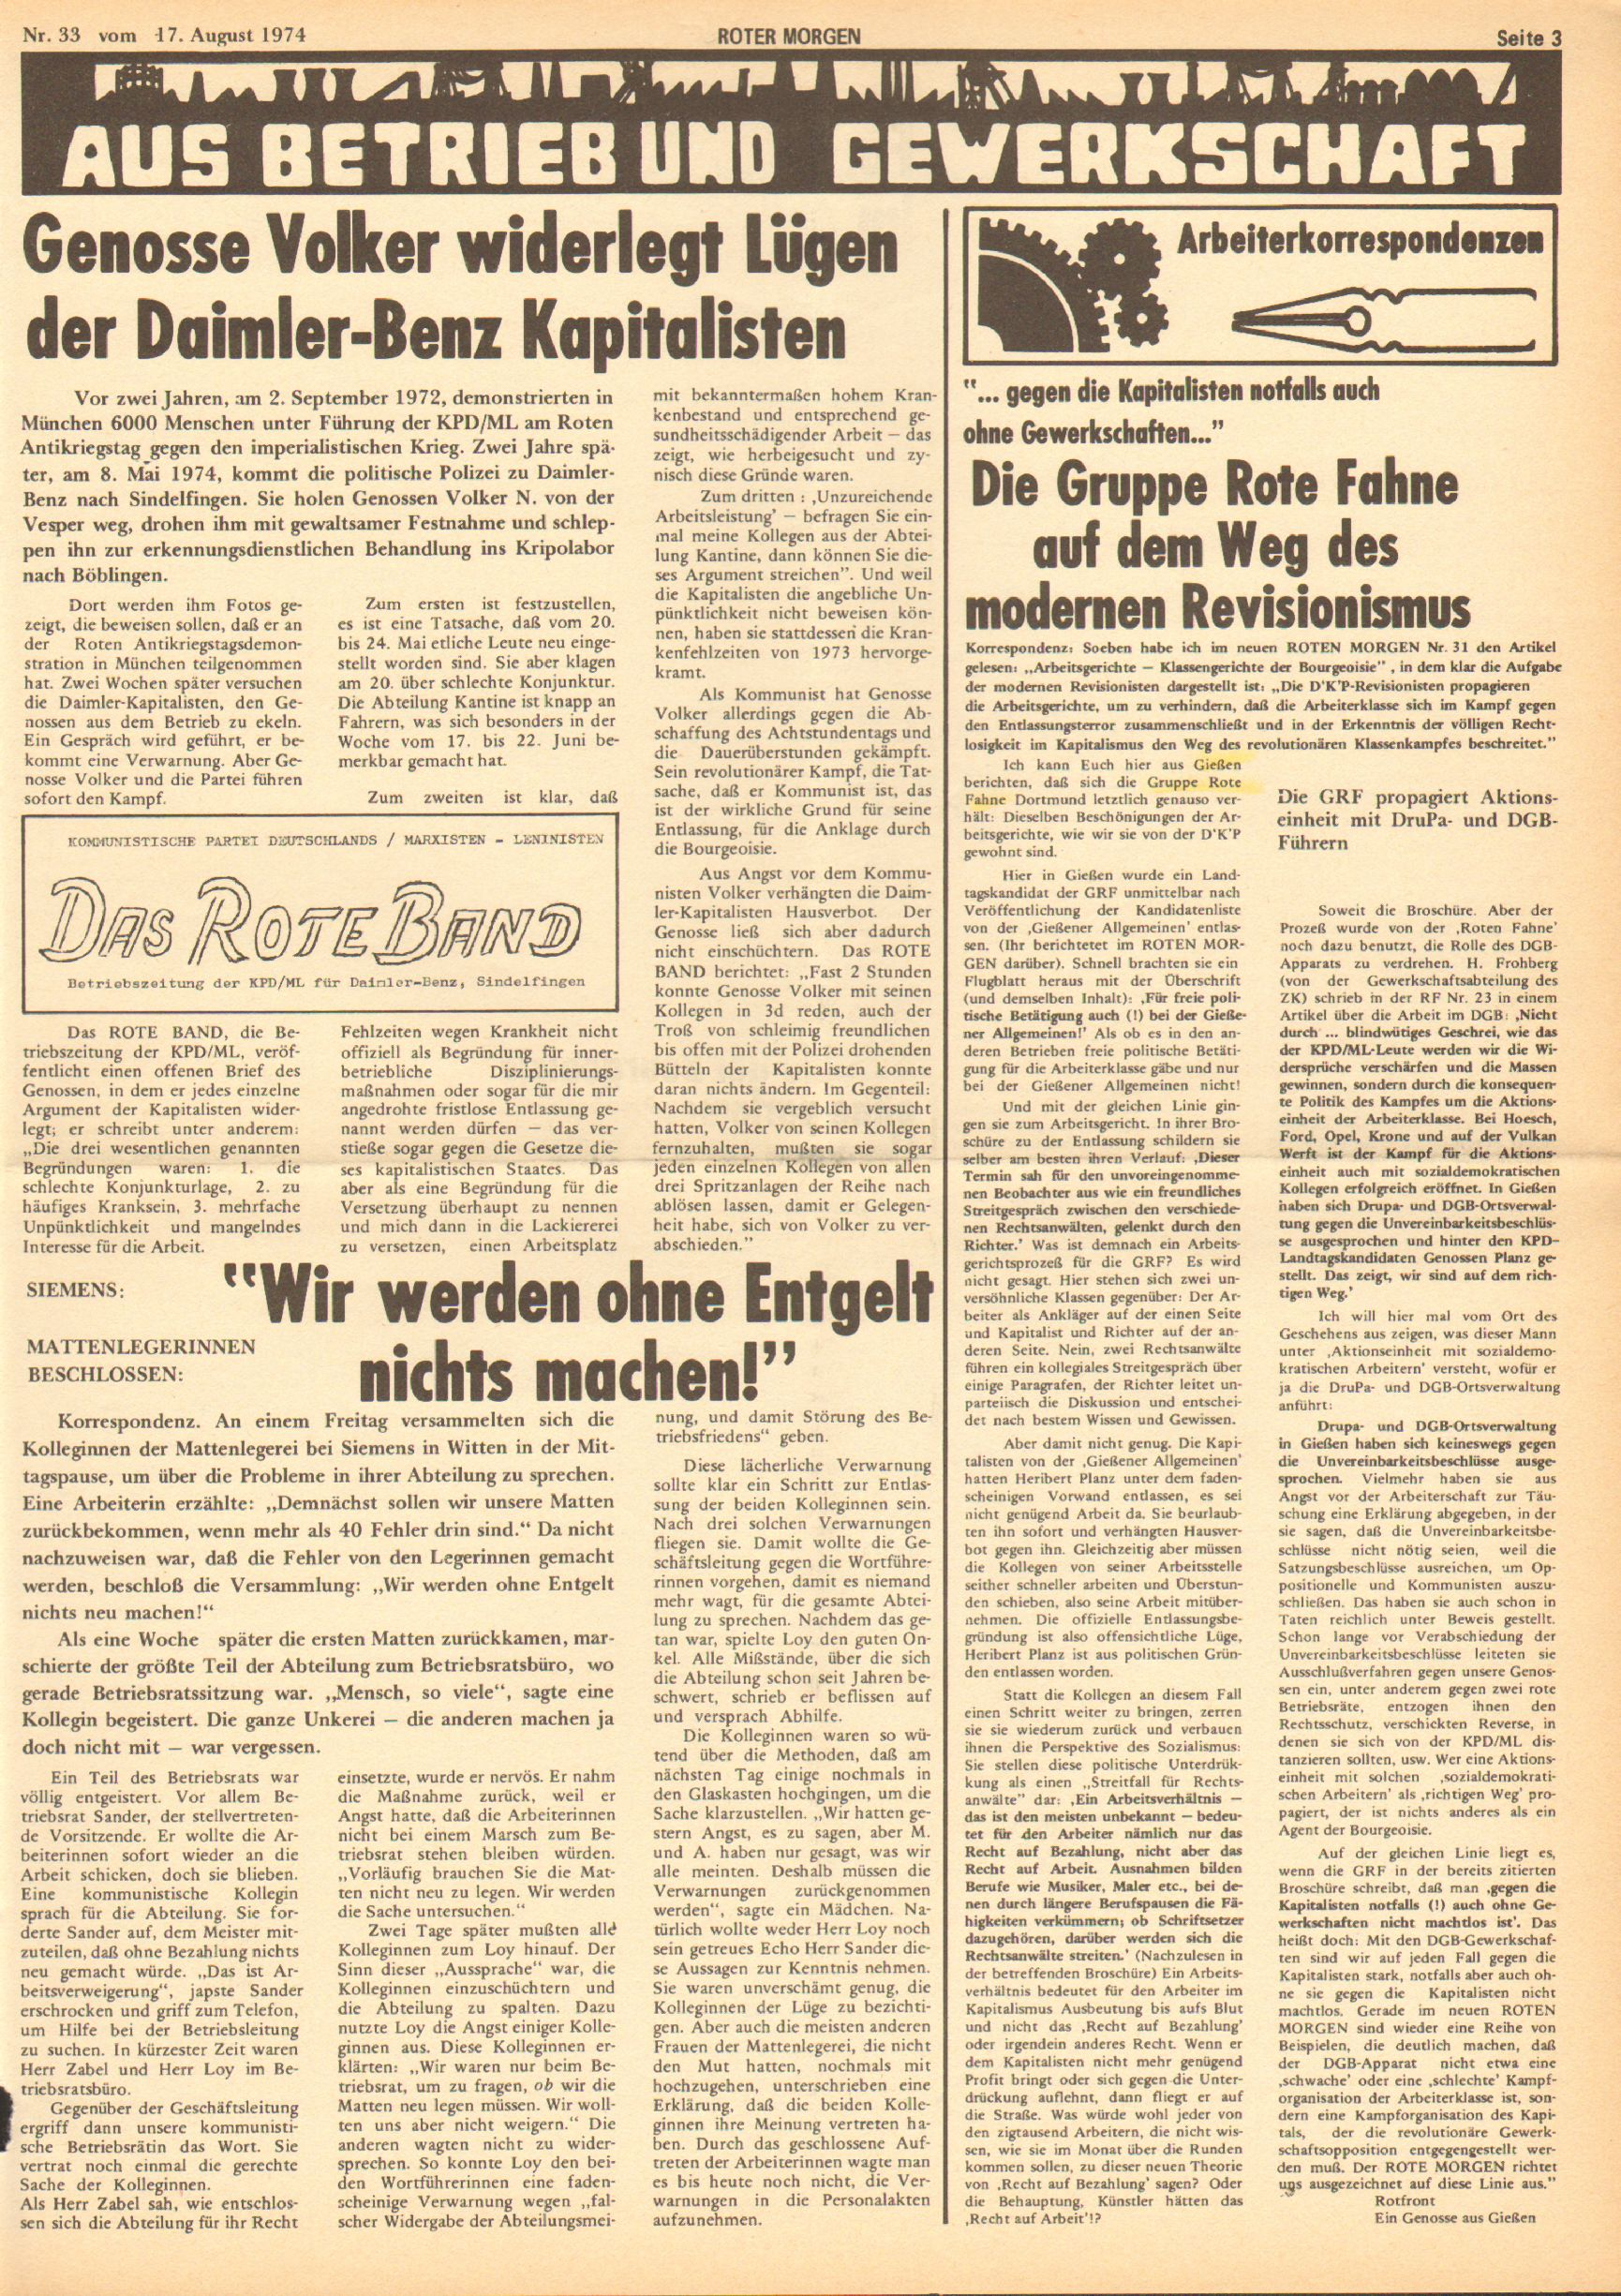 Roter Morgen, 8. Jg., 17. August 1974, Nr. 33, Seite 3